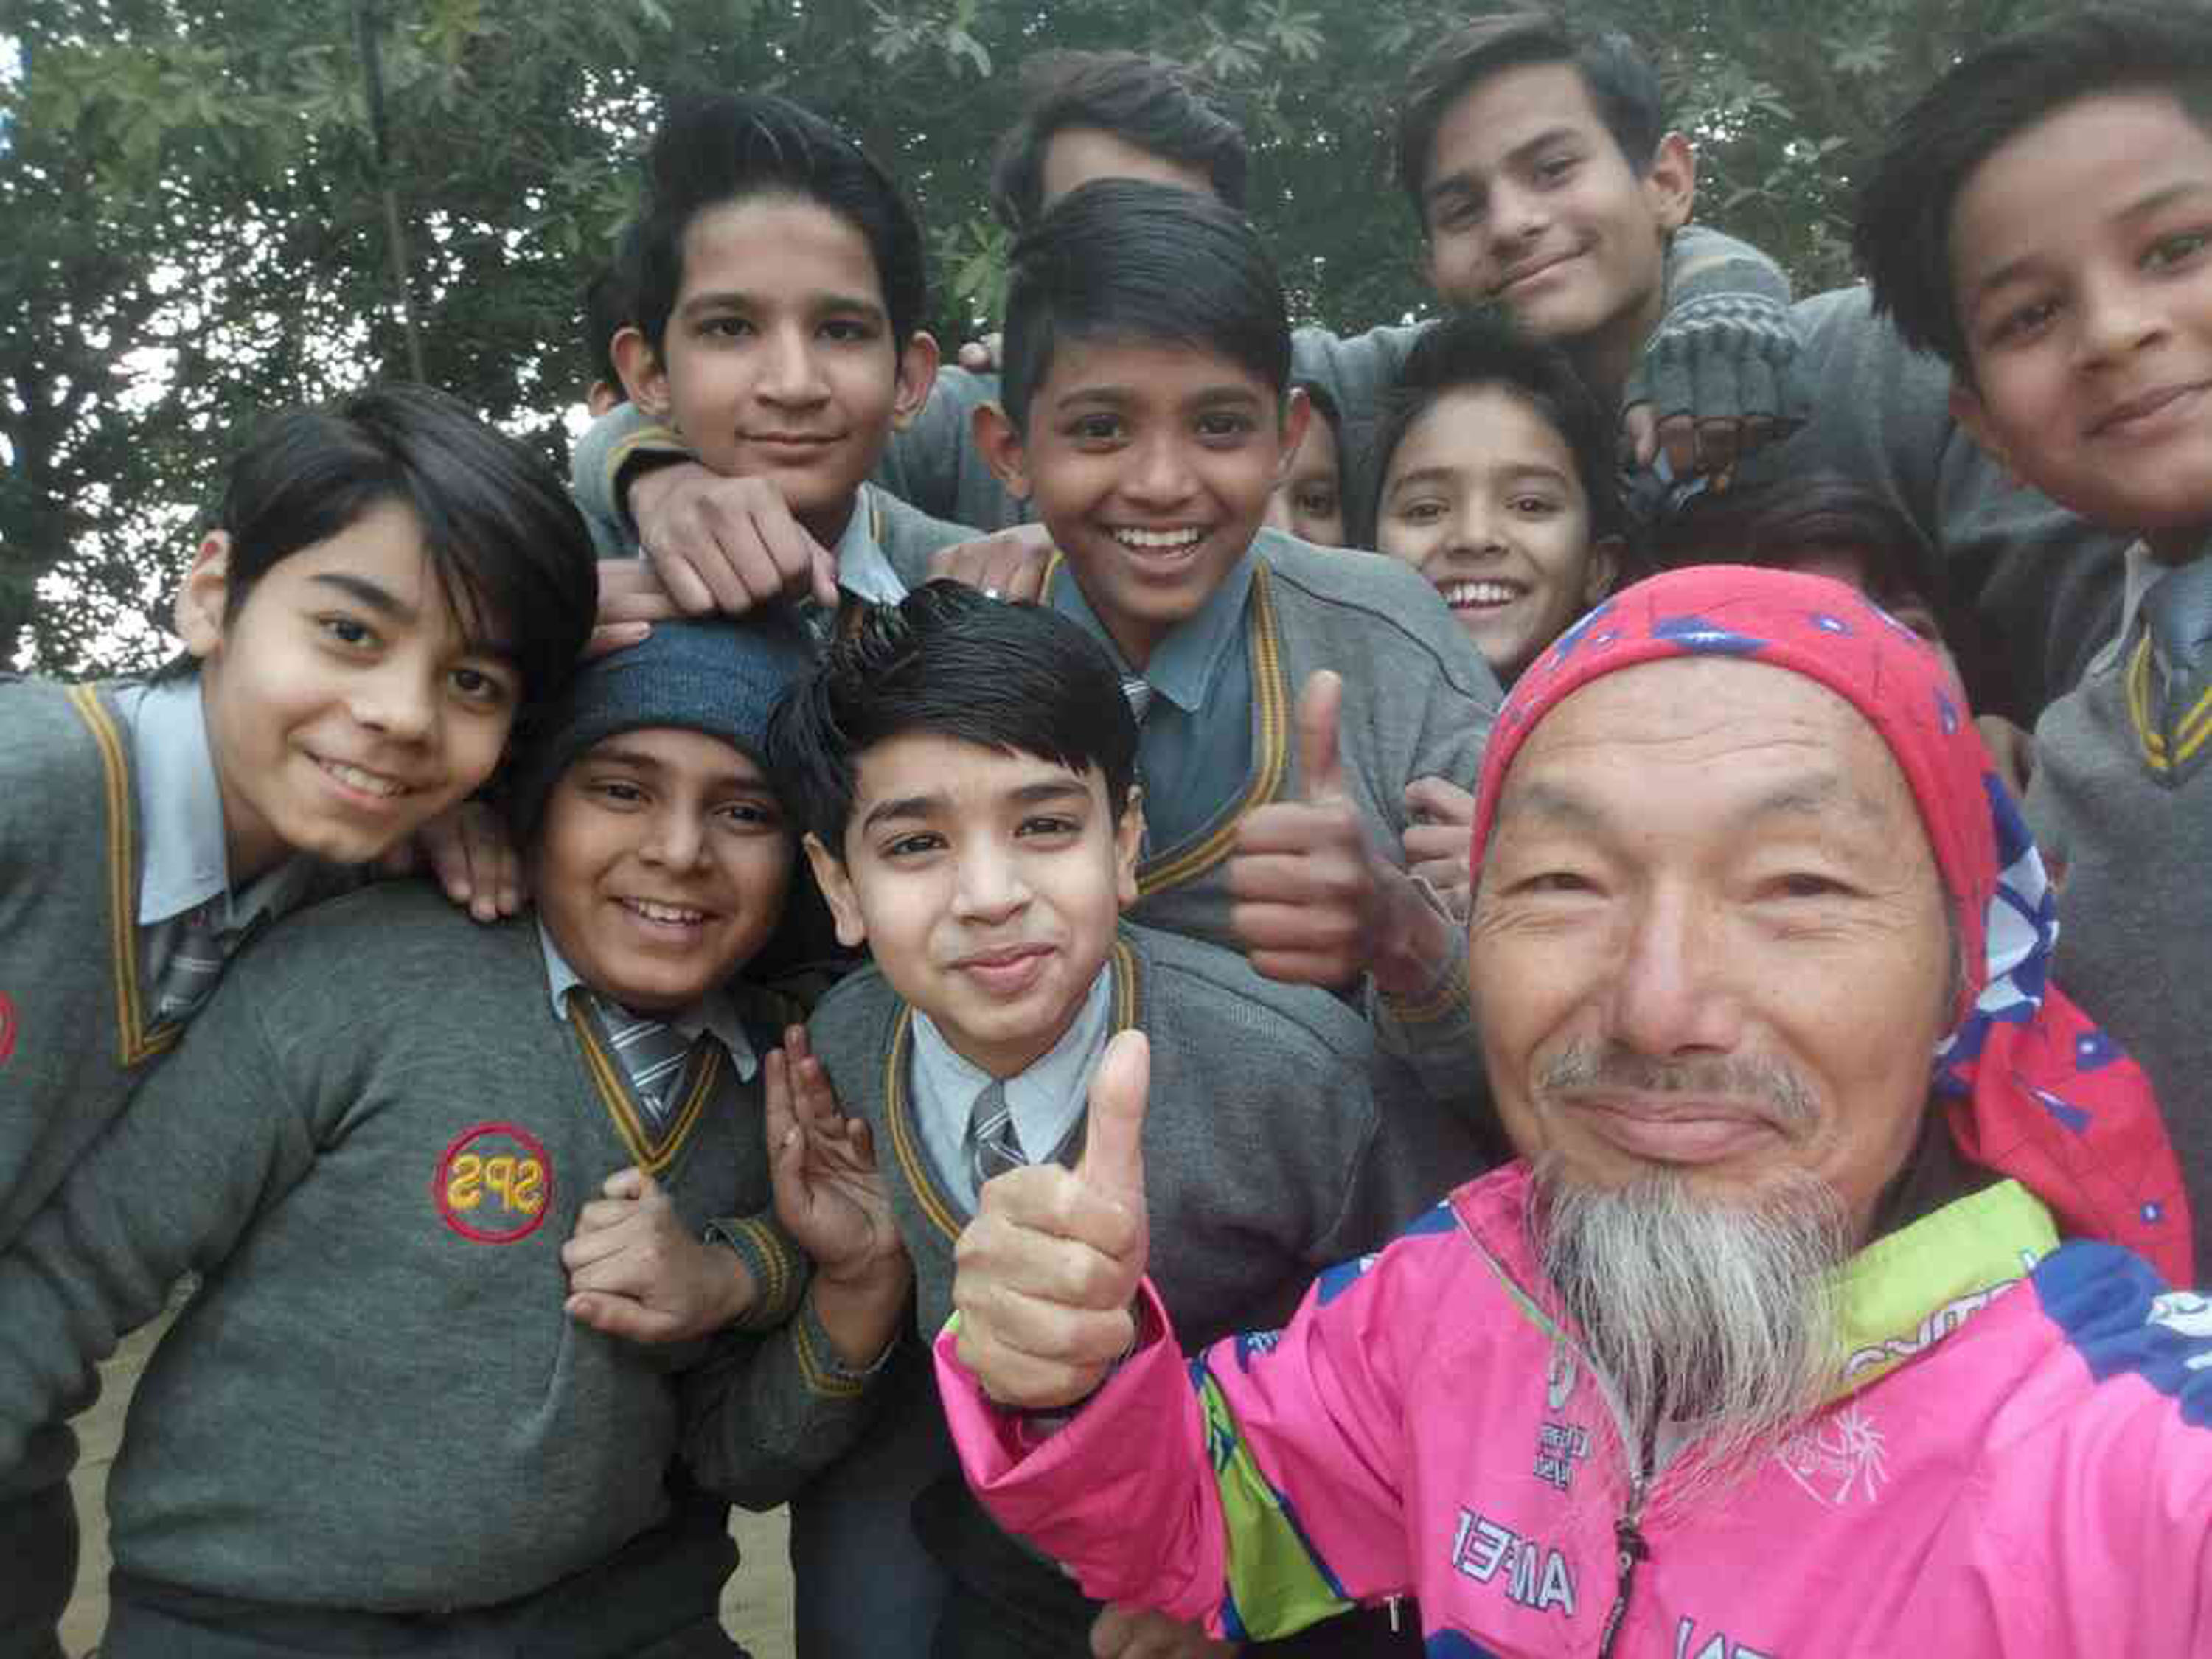 Chen Min-hsien reached New Delhi on his bicycle.